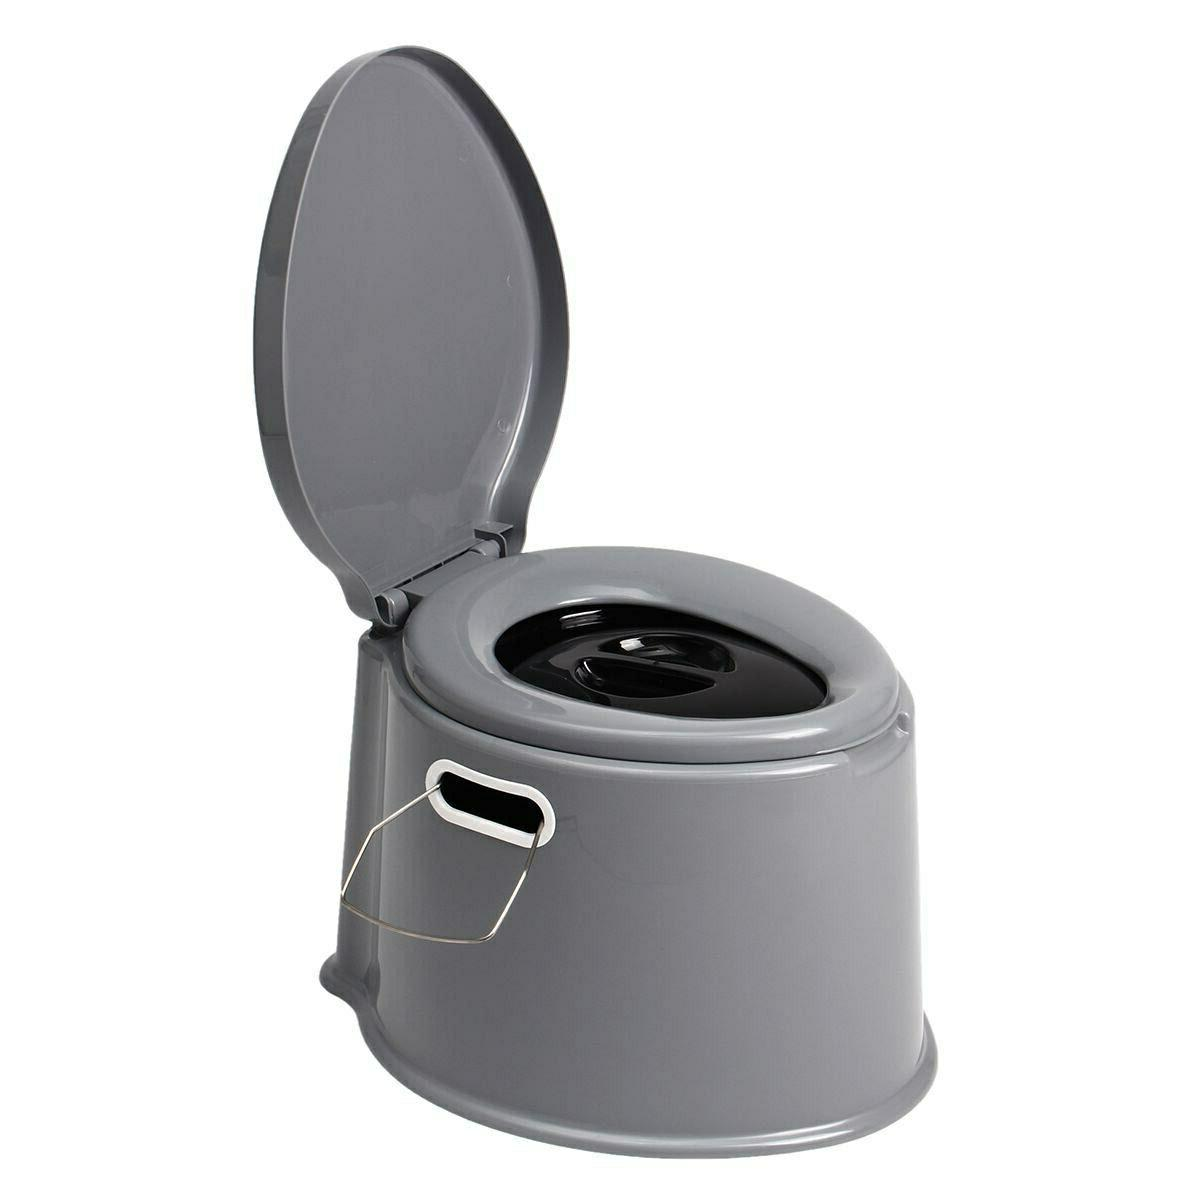 4 Portable Seat Outdoor Potty Mobile